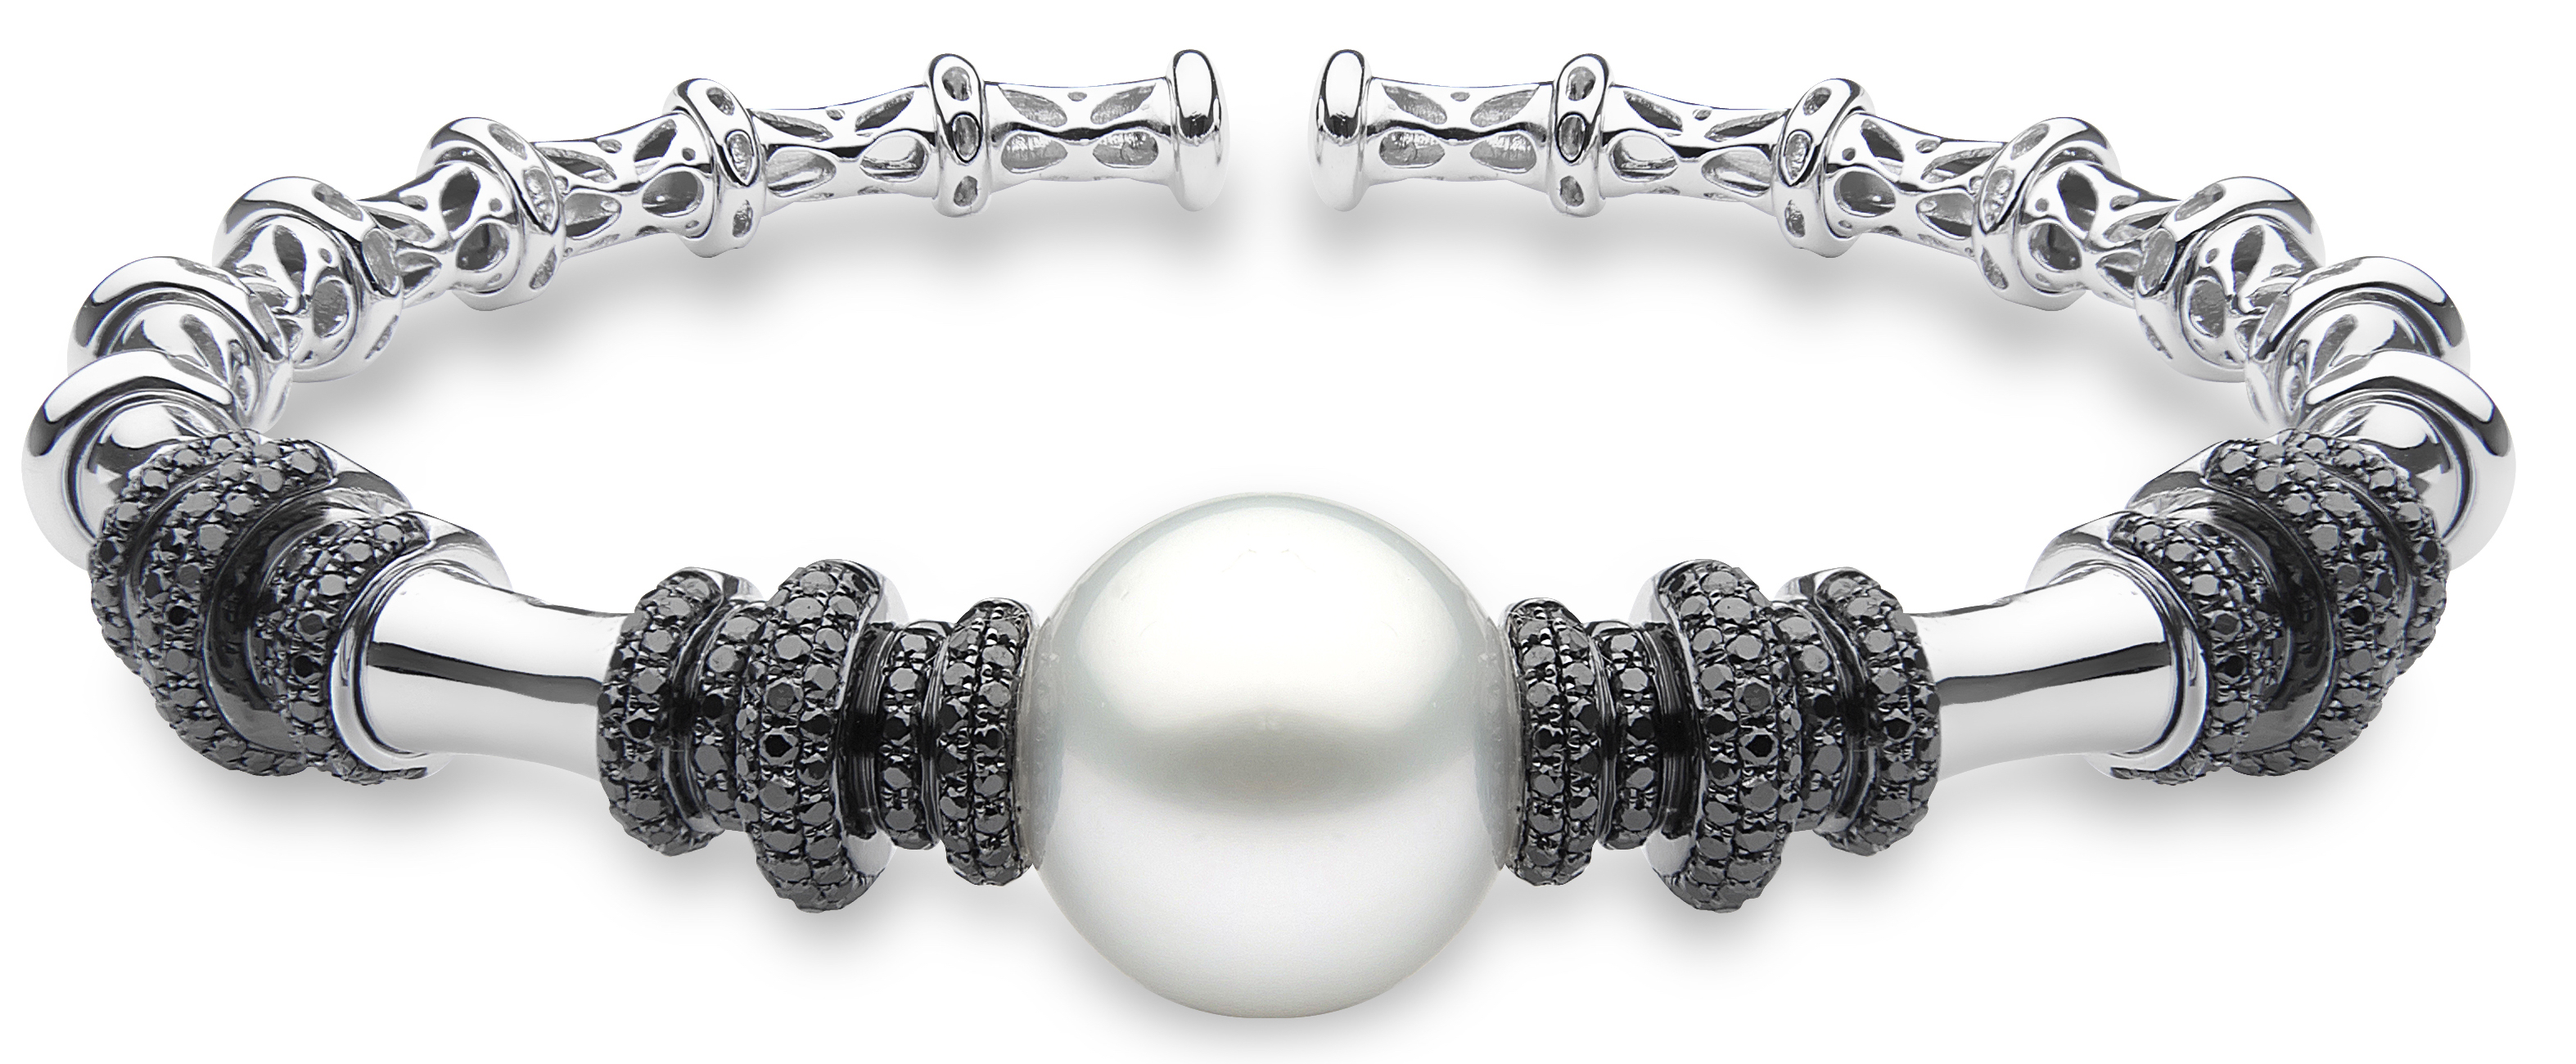 Yoko London pearl and black diamond bangle | JCK On Your Market